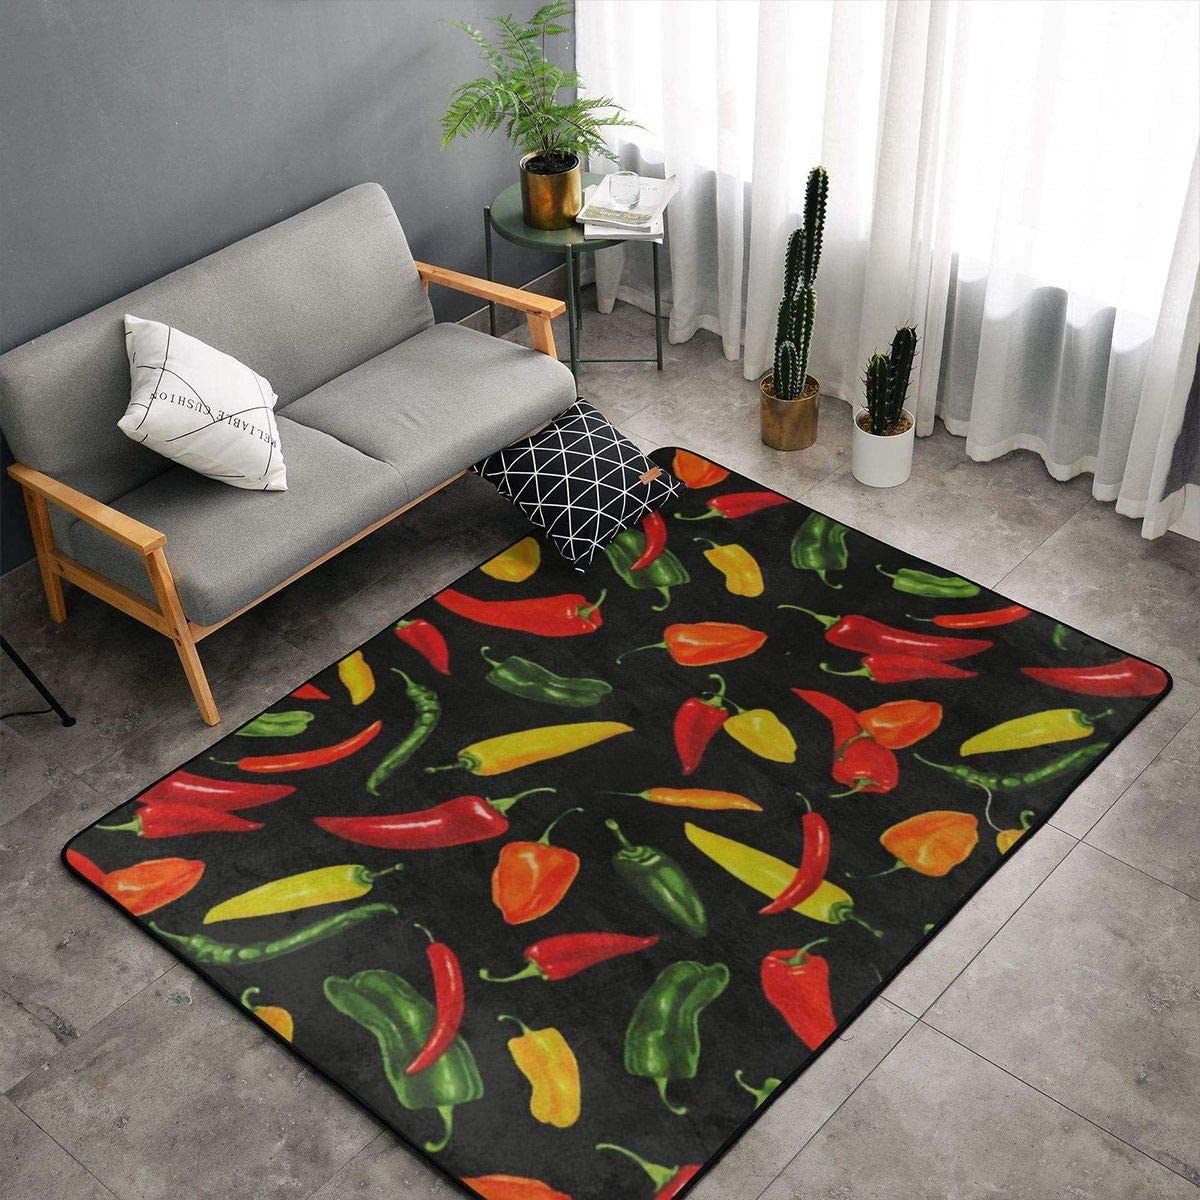 Chill Peppers Area Rugs Doormats Vintage Cute 5 x3 3 60×39 Inches Non-Slip Floor Mat Soft Carpet For Living Dining